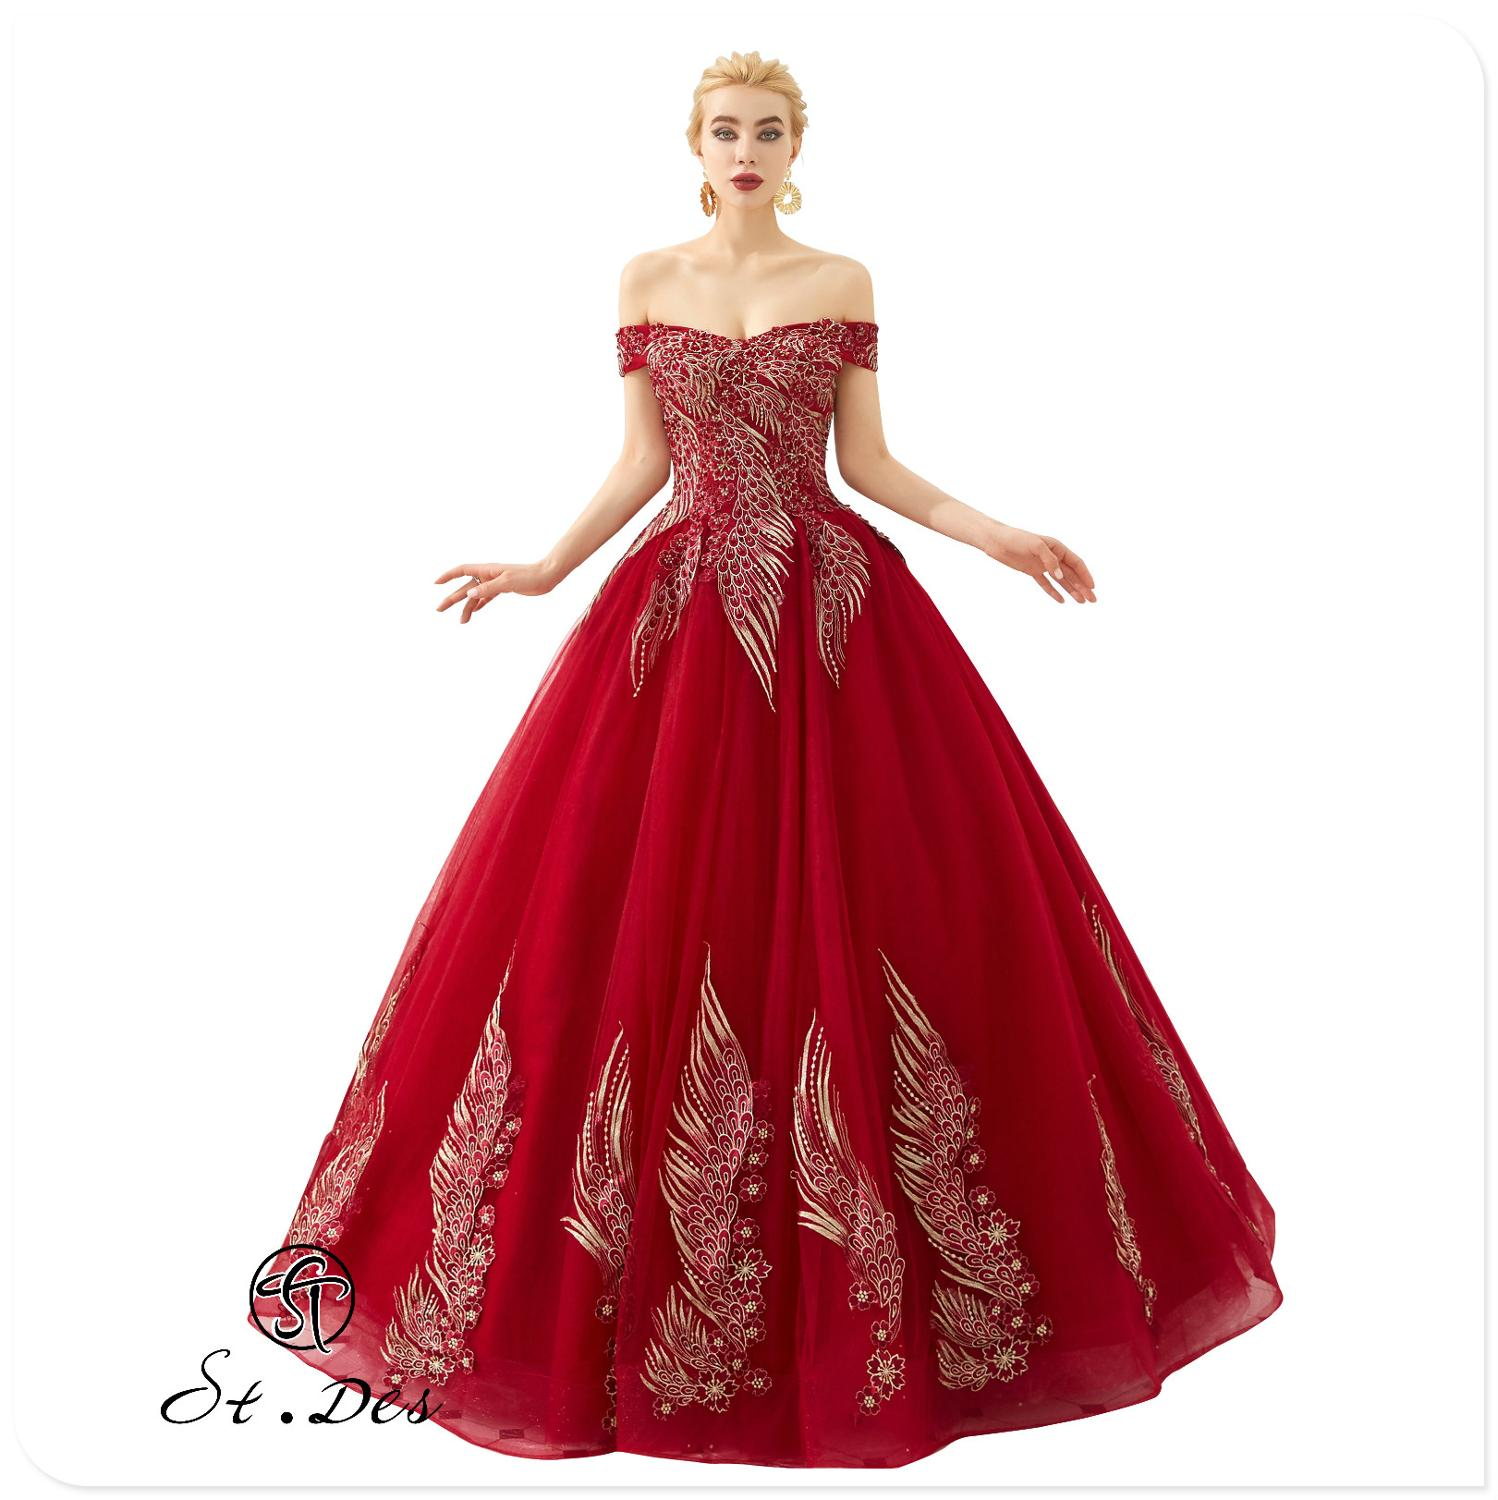 NEW 2020 St.Des A-line V-neck Russian Red Phoenix Sequins Beading Sleeveless Designer Floor Length Evening Dress Party Dress